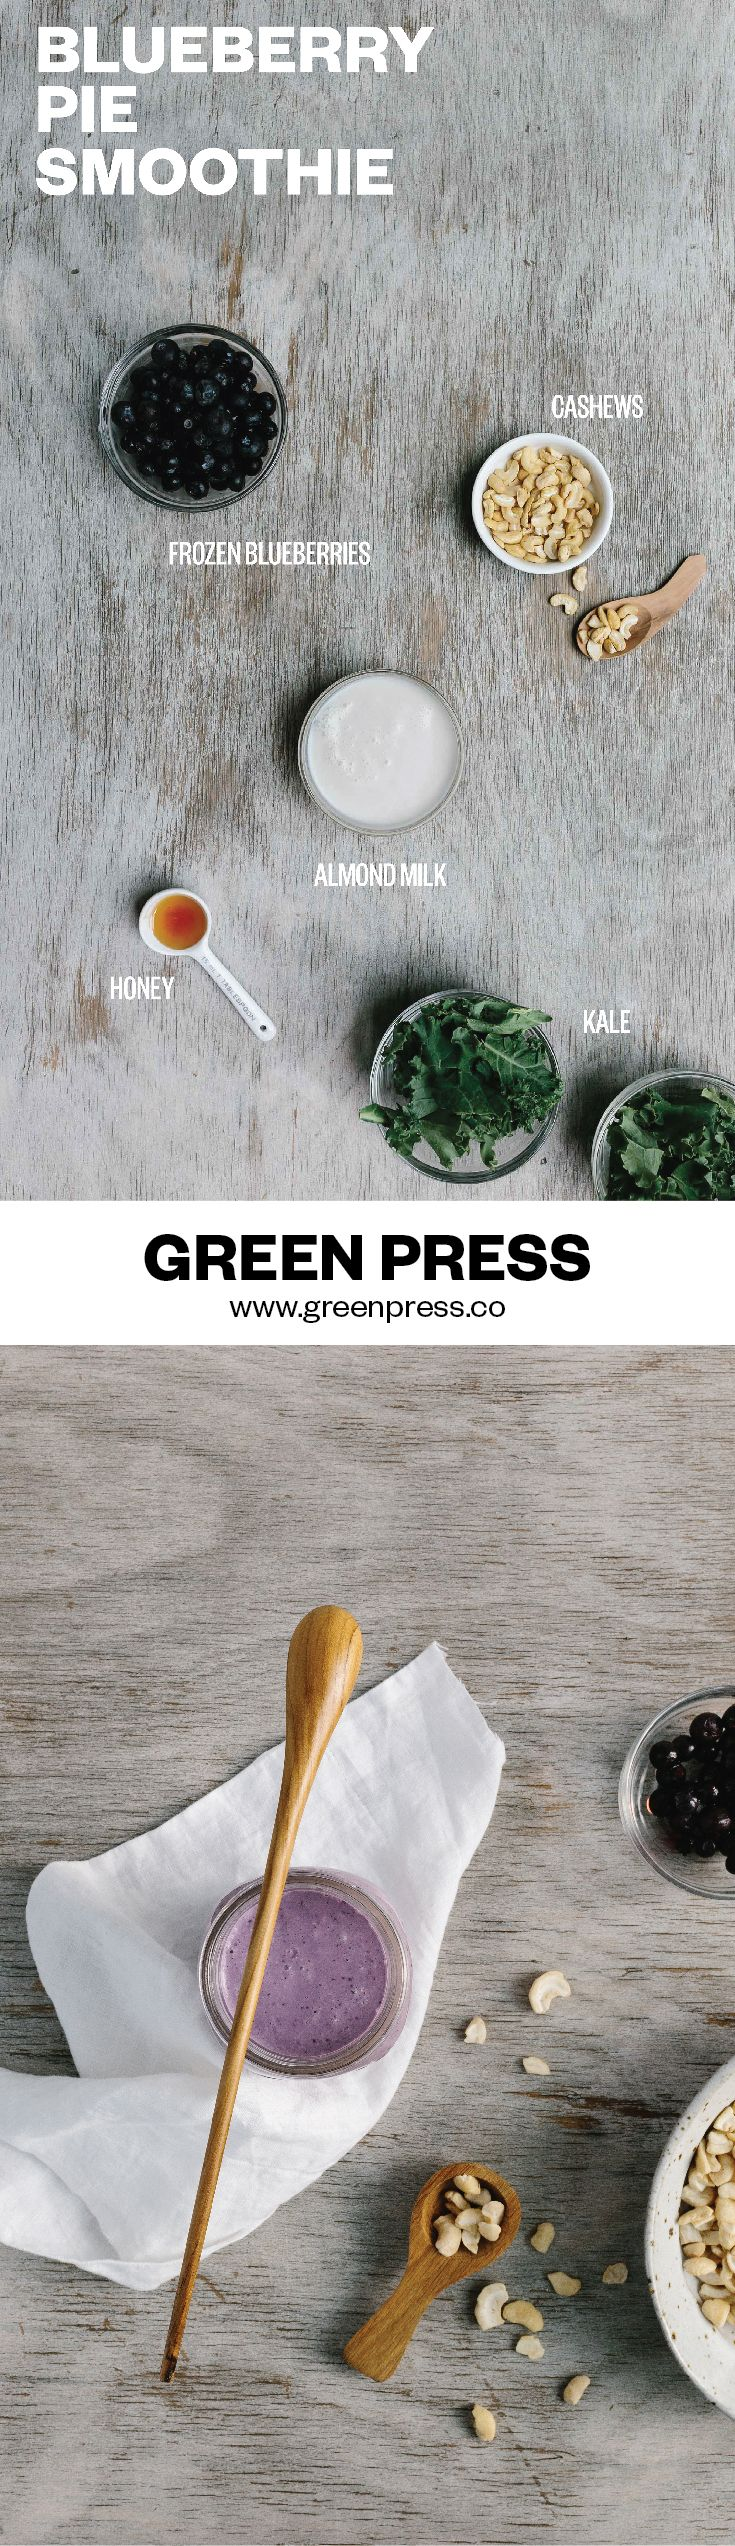 How To Make Kale Taste Like A Blueberry Pie.Proof that healthy plants taste amazing. The most dense green vegetable is overshadowed by skin glowing blueberries, creamy cashews and sweet honey. This smoothie recipe is creamy, delicious and filling. | http://greenpress.co